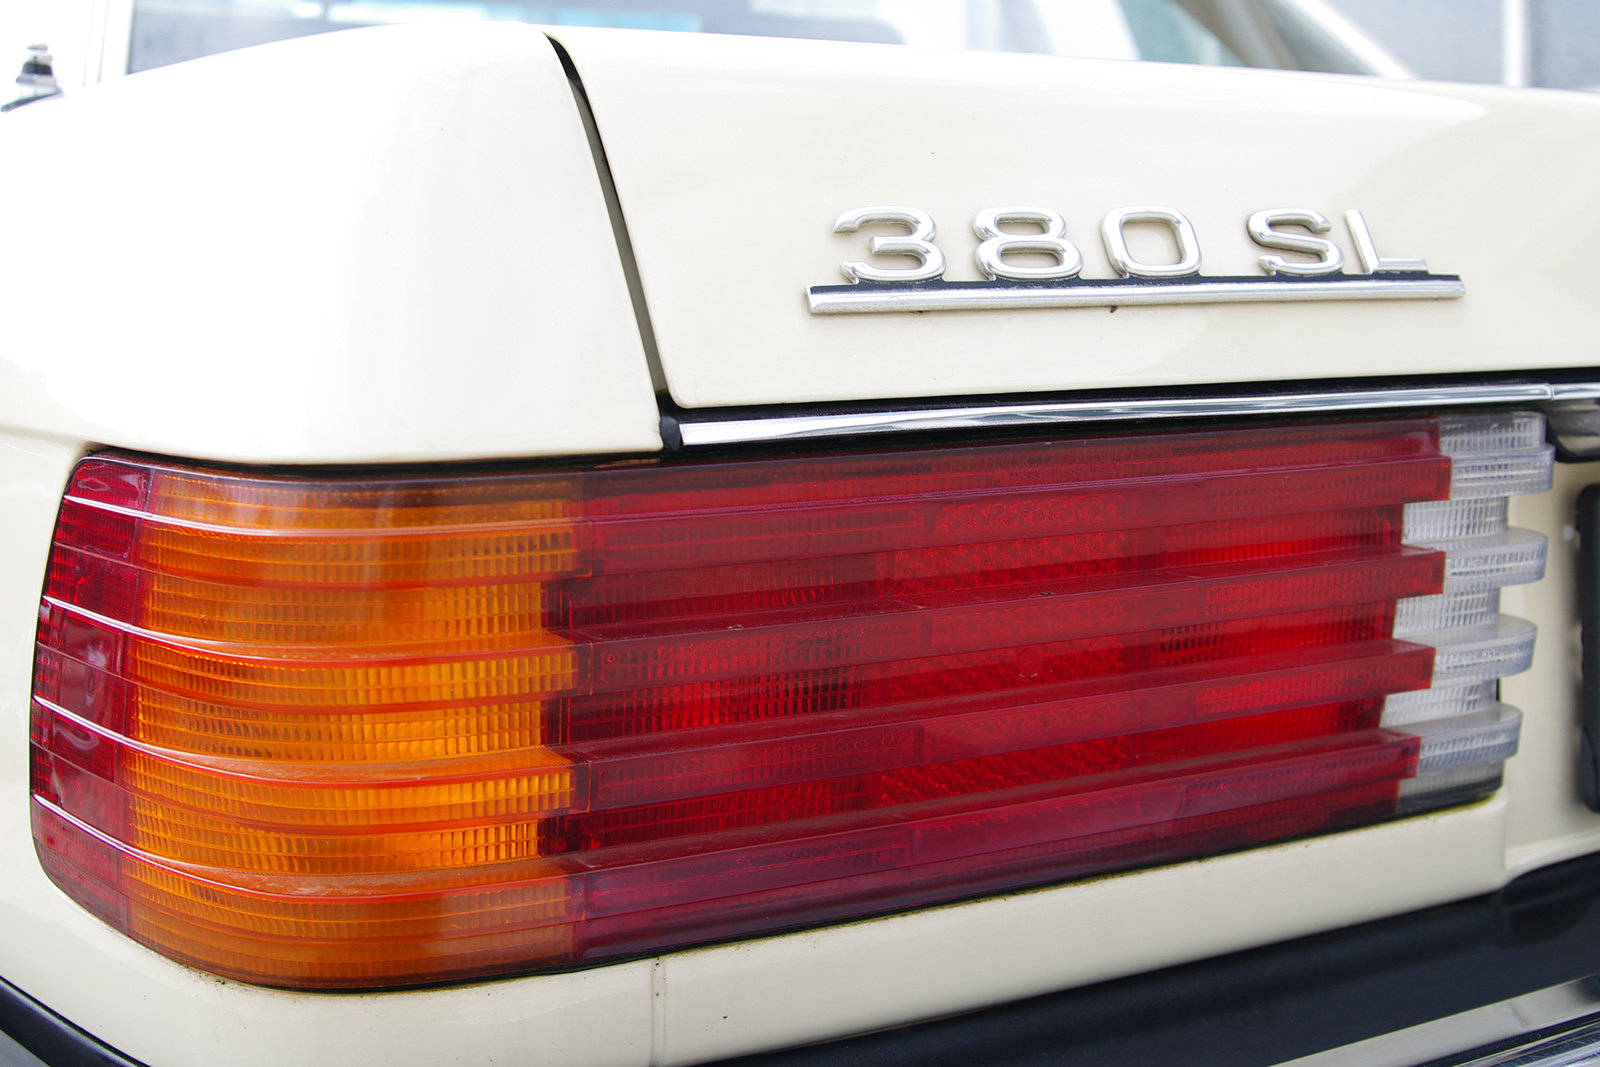 1982 Mercedes-Benz 380 SL - R 107 - partially restored SOLD (picture 6 of 6)